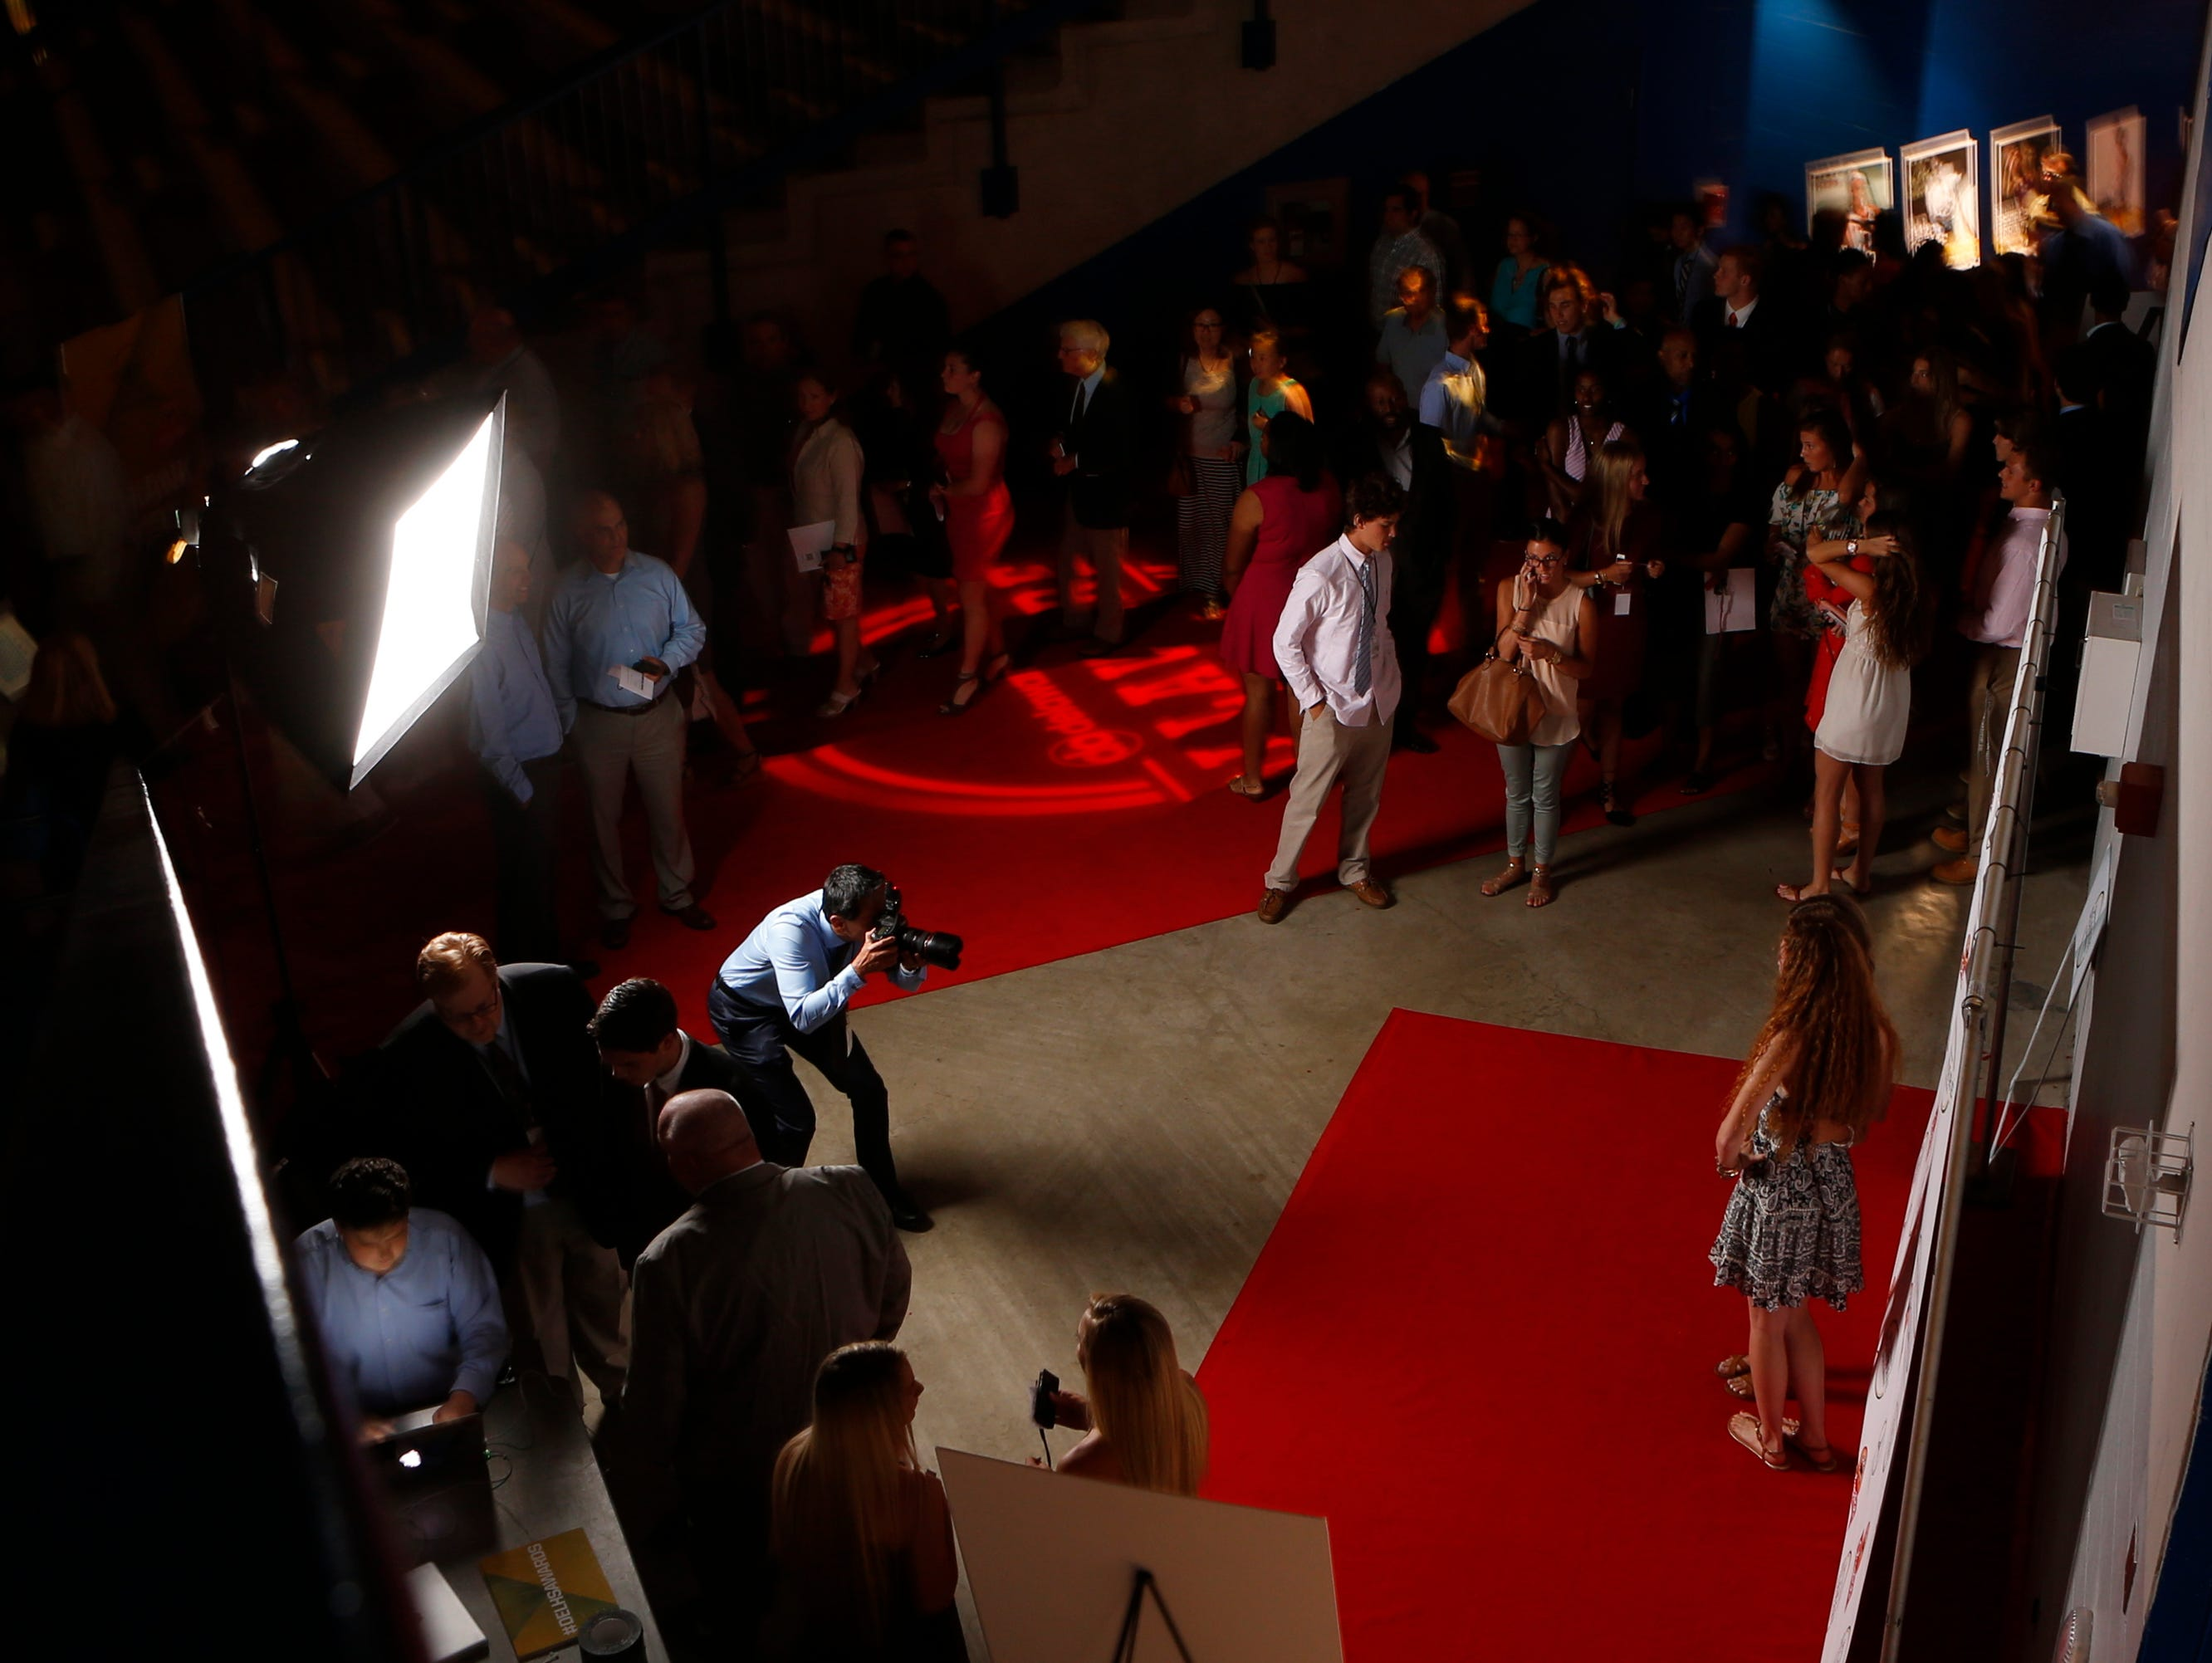 Attendees have their photos taken on the red carpet as they arrive during the Delaware Sports Awards banquet at the Bob Carpenter Center Wednesday.